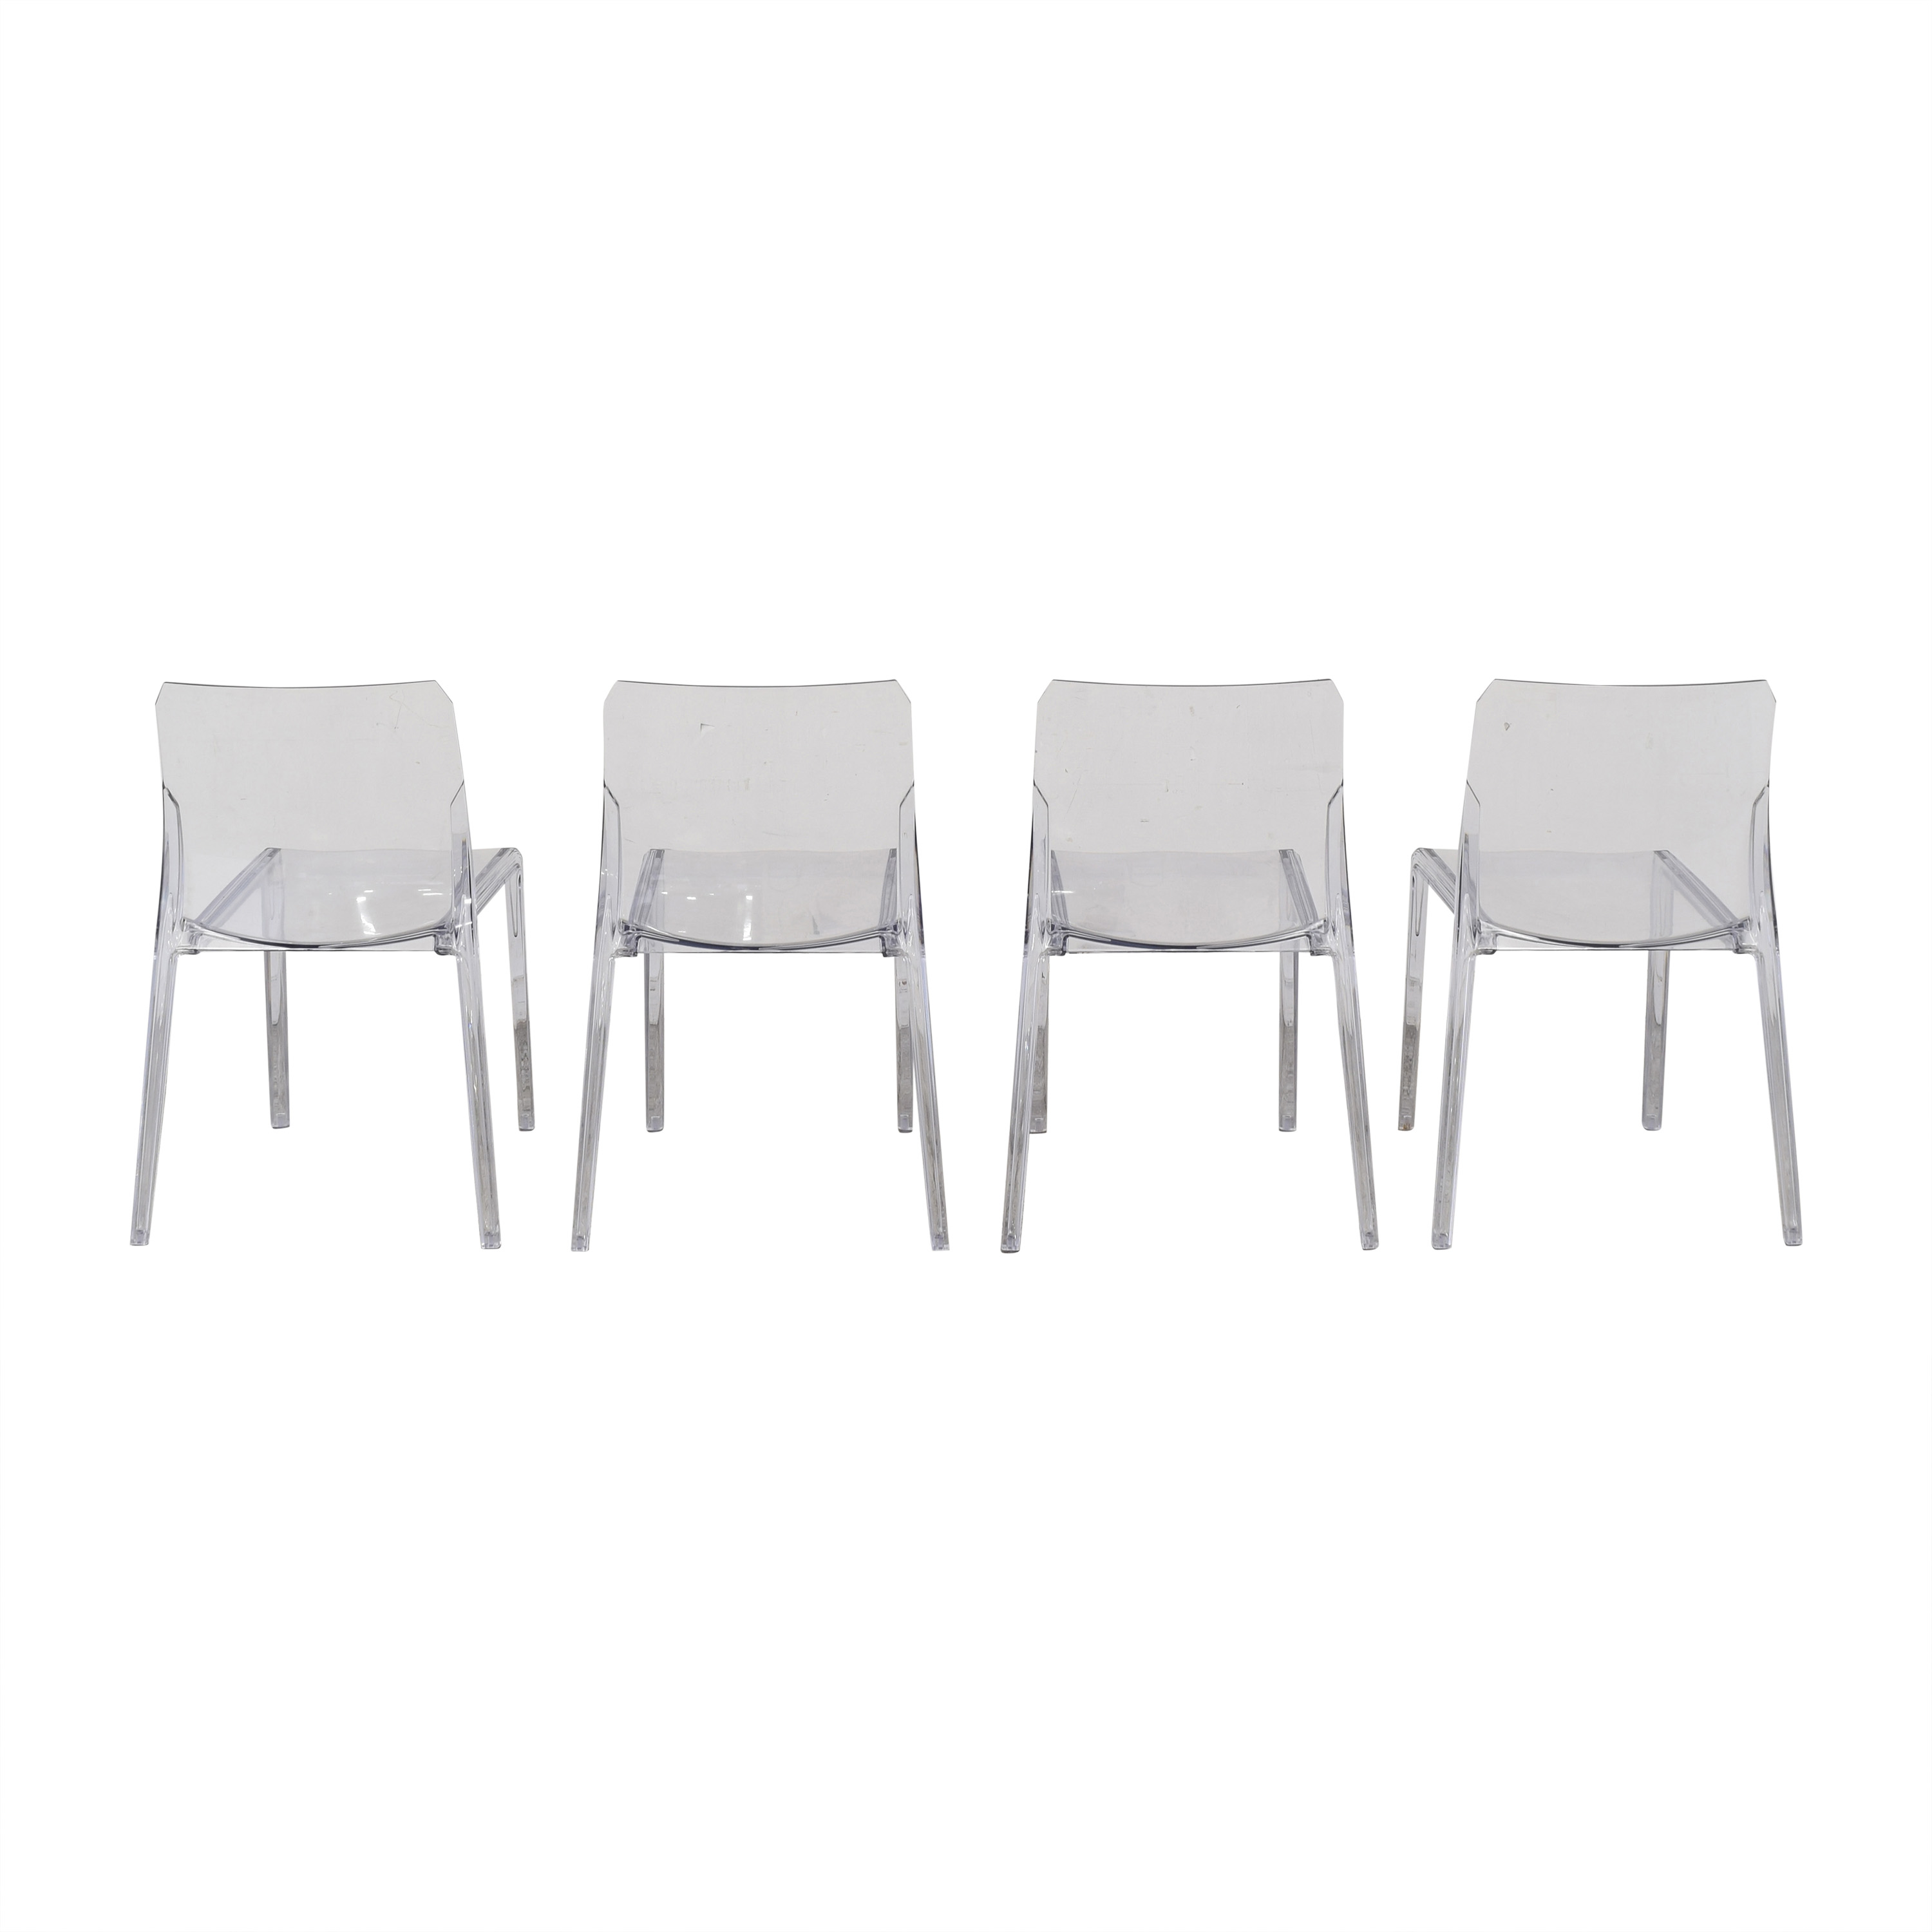 CB2 CB2 Bolla Clear Dining Chairs discount